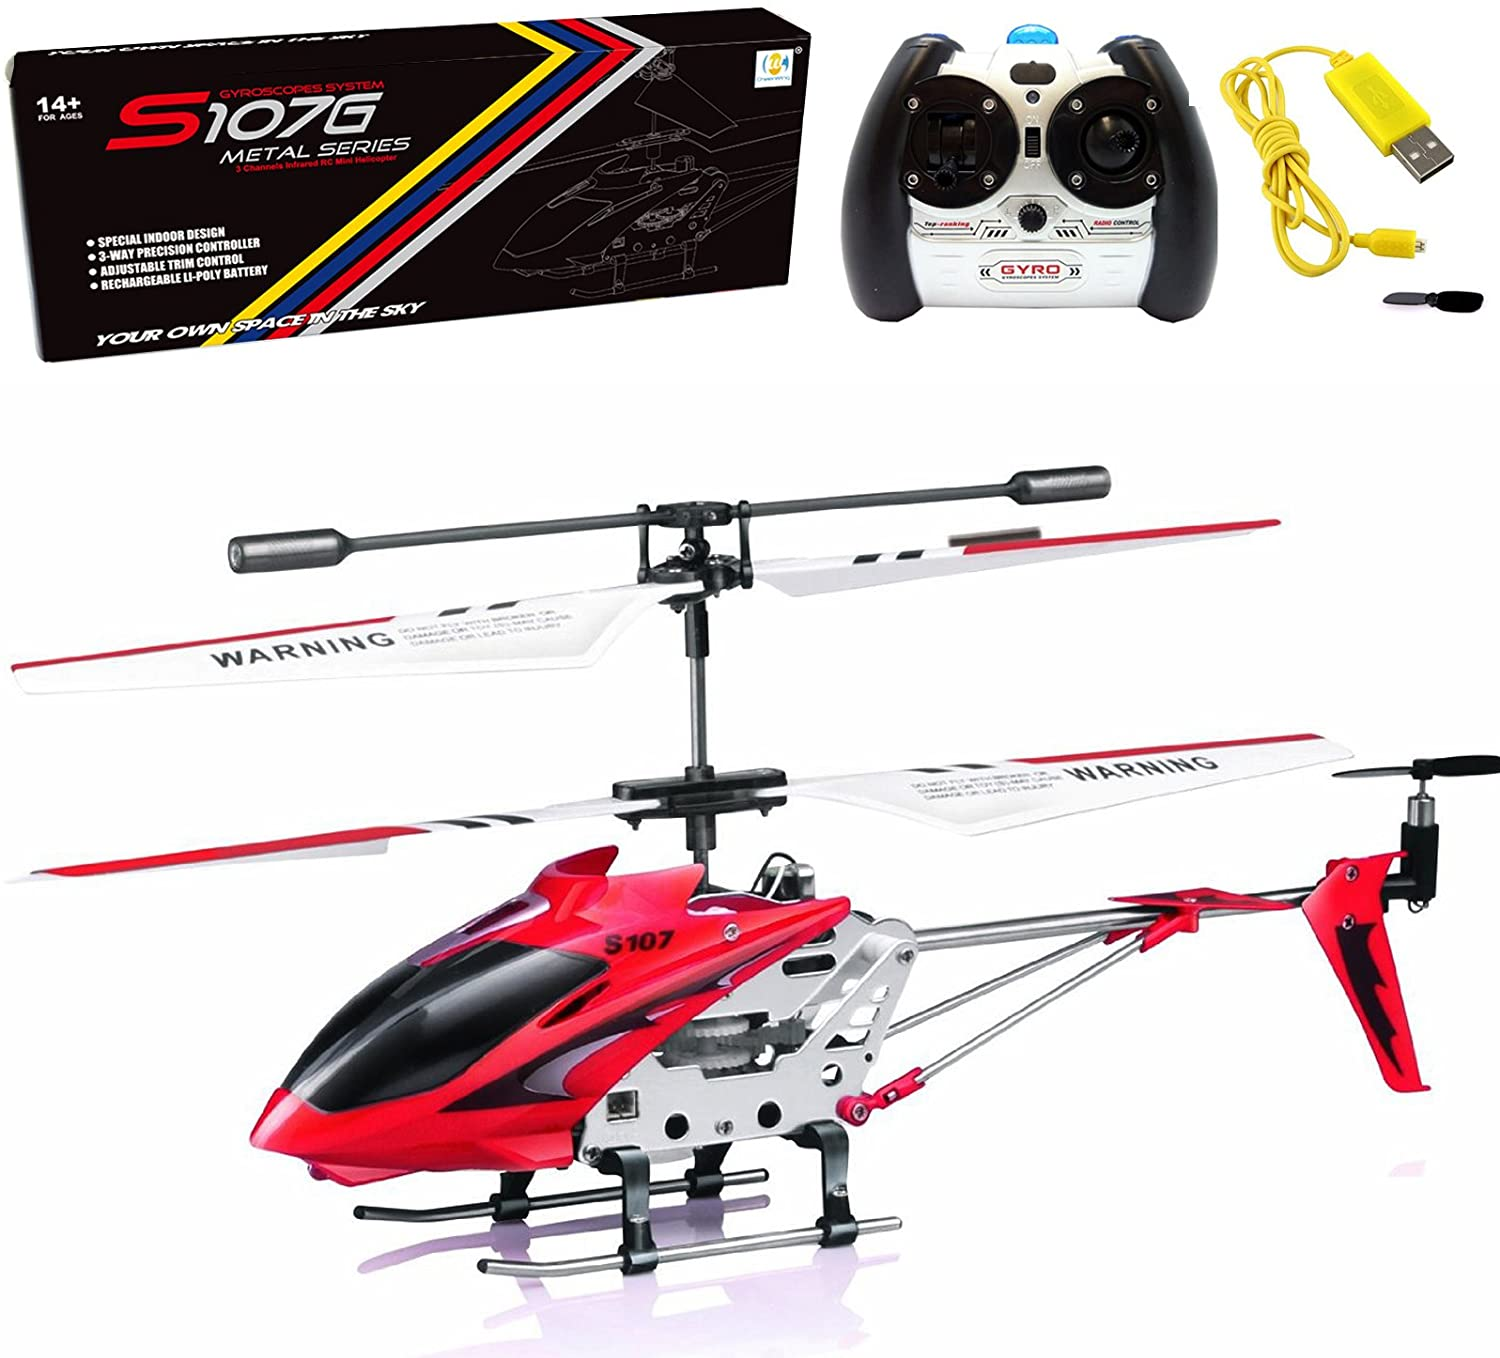 Cheerwing Phantom 3.5 Channel Mini RC Helicopter S107/S107G